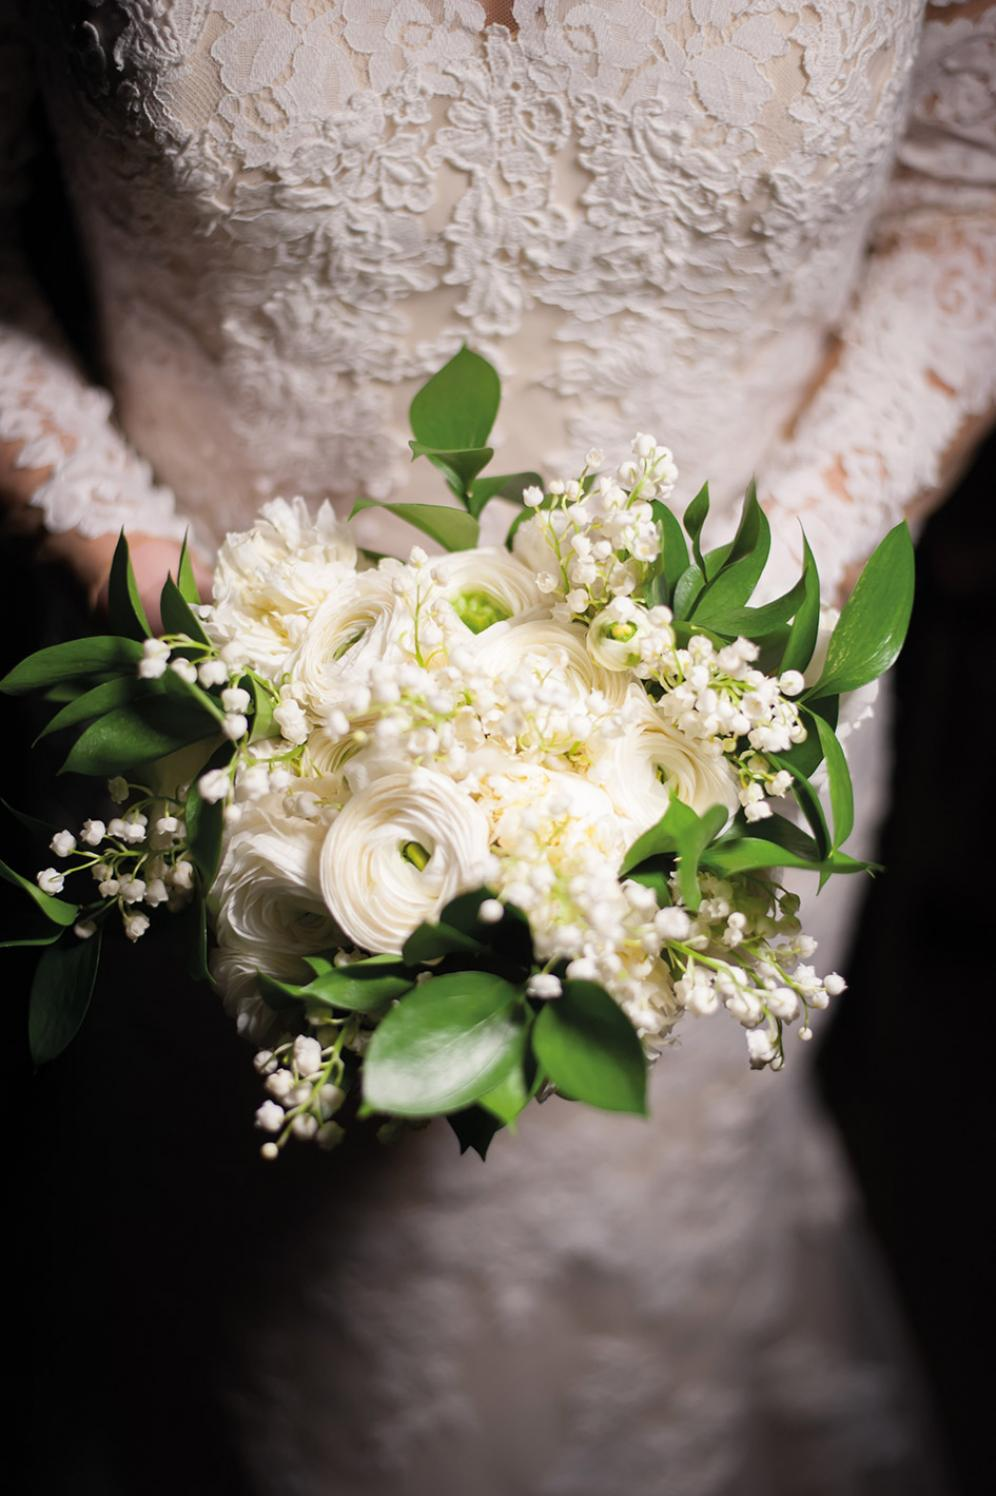 Flower power sweet and simple make the prettiest of bouquets marlon taylor photography izmirmasajfo